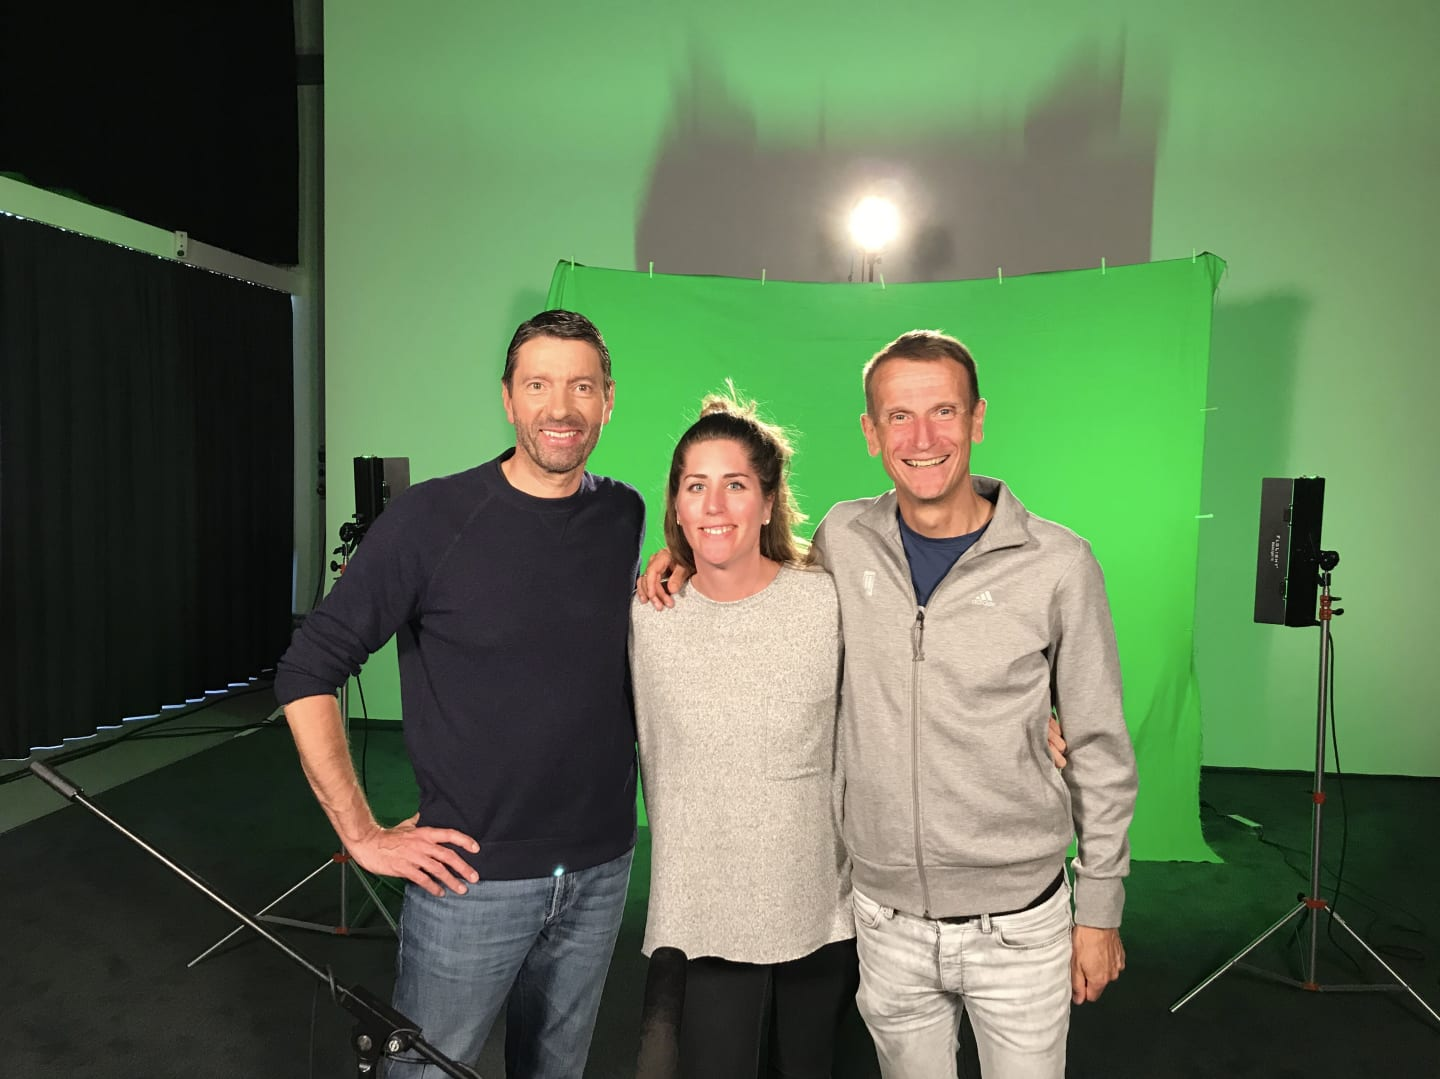 Group picture of adidas CEO Kasper Rorsted, employee Maaike Dejeu and Jan Runau at a video shooting set. GamePlan A, work life, lifestyle, job, health